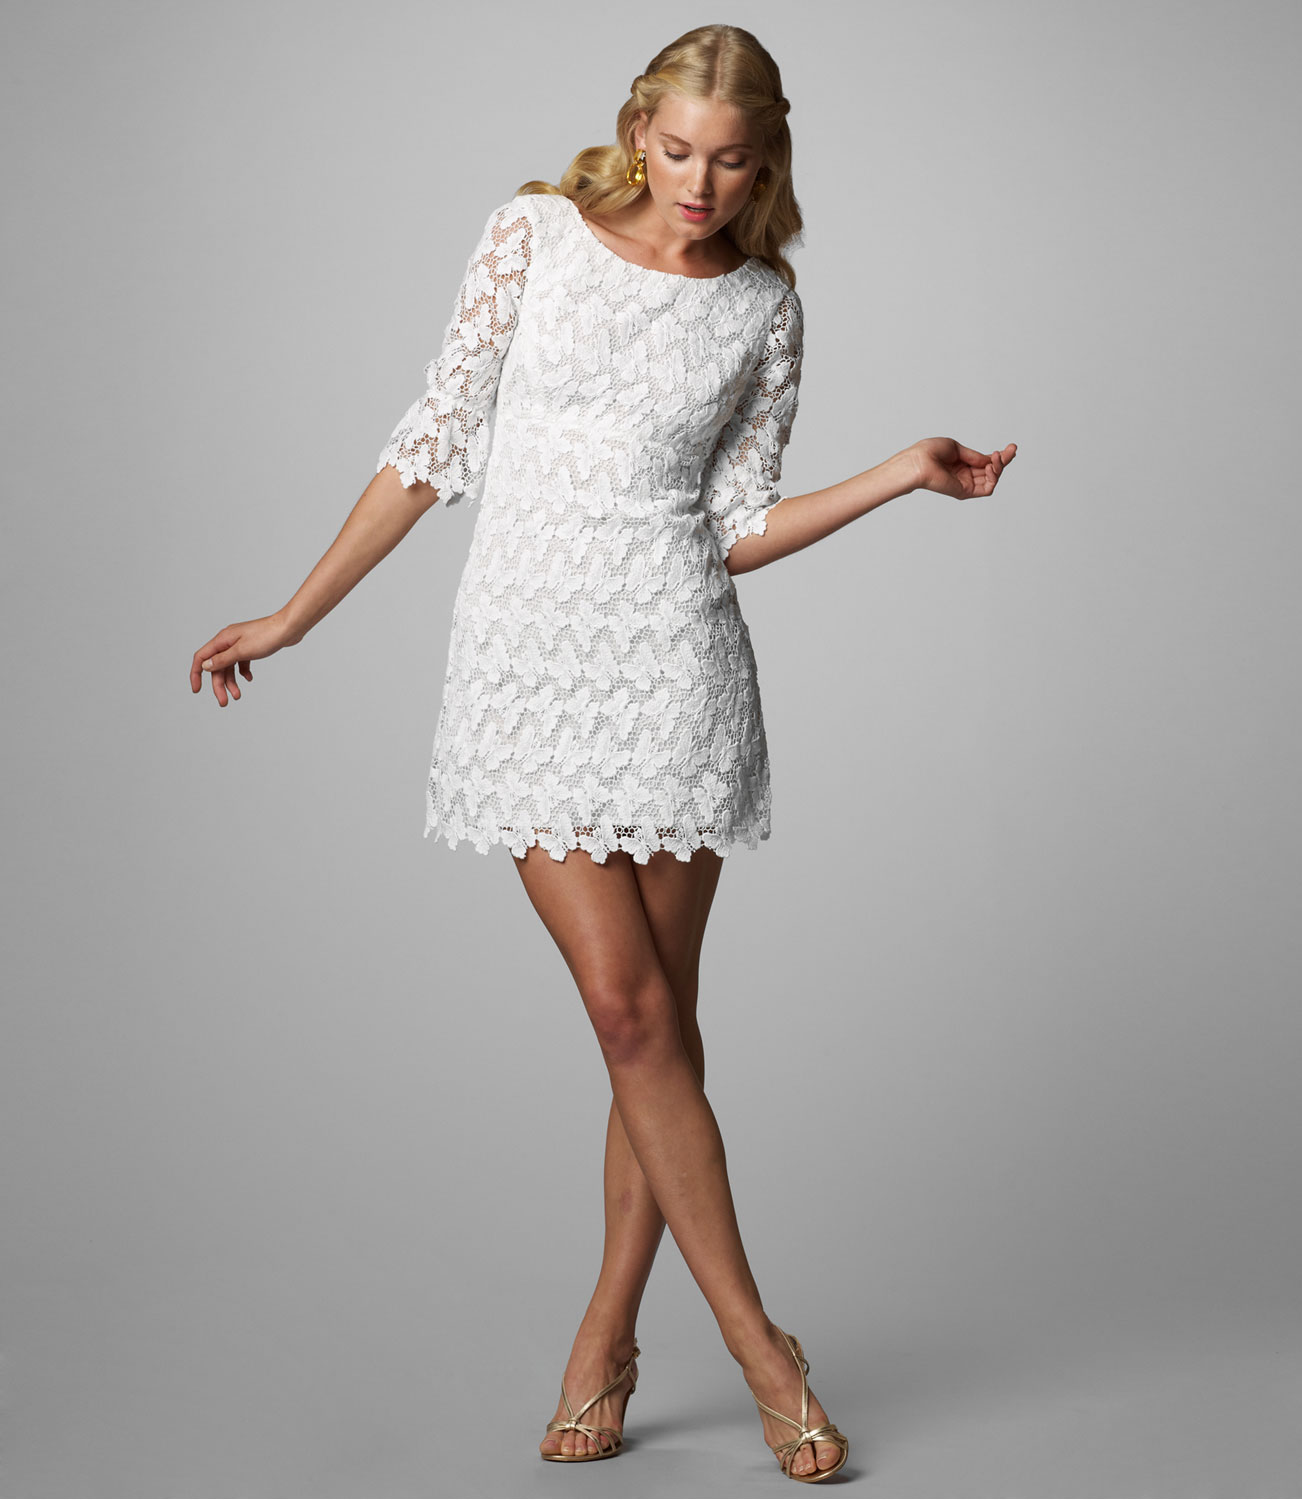 Another Favorite Little White Dress From Lilly Pulitzer Is The Shayna Lace 3 4 Length Sleeves Are So Pretty And I Adore Overlay